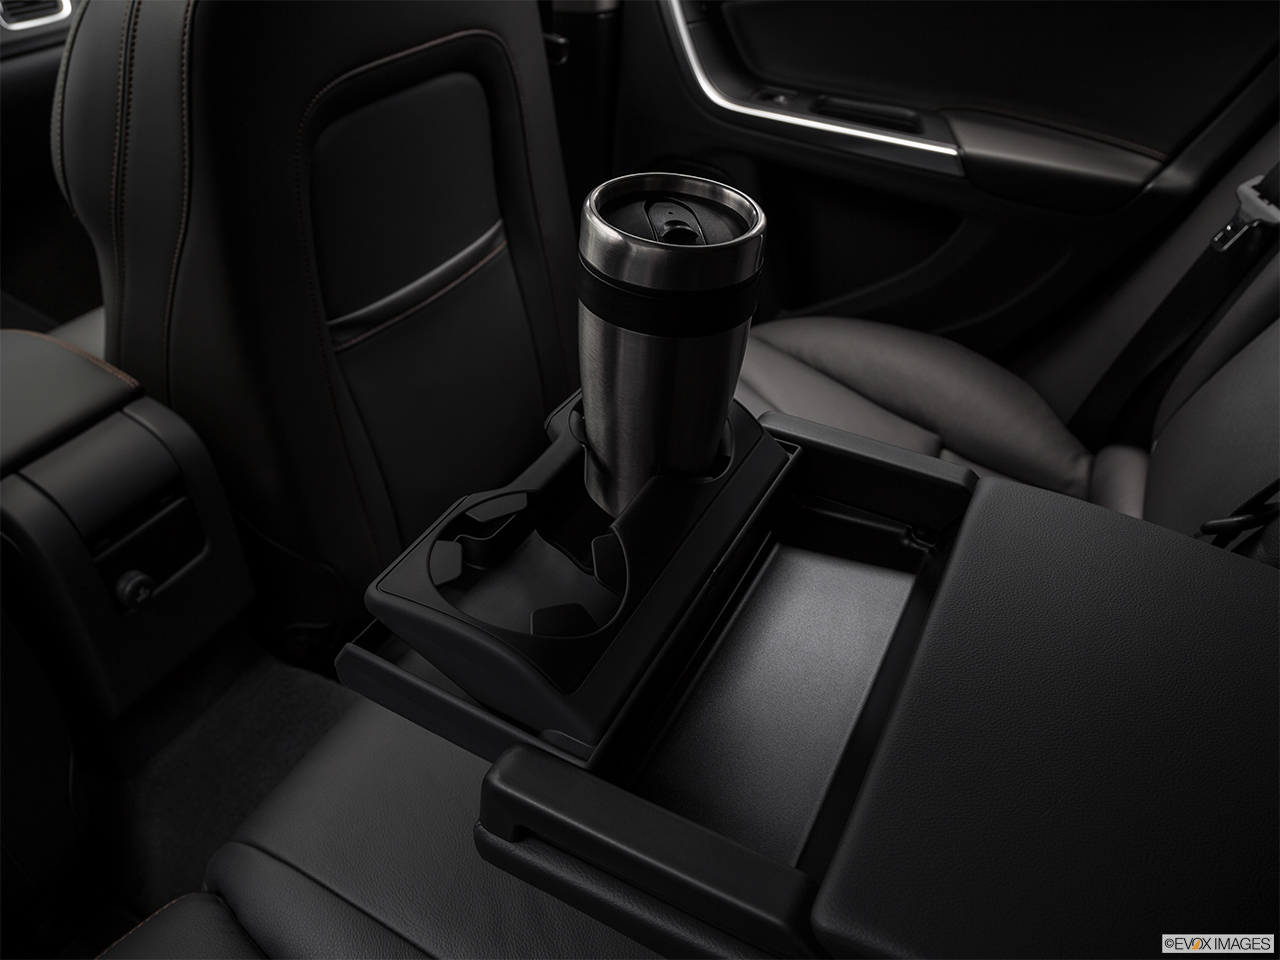 2018 Volvo V60 Cross Country T5 AWD Cup holder prop (quaternary).